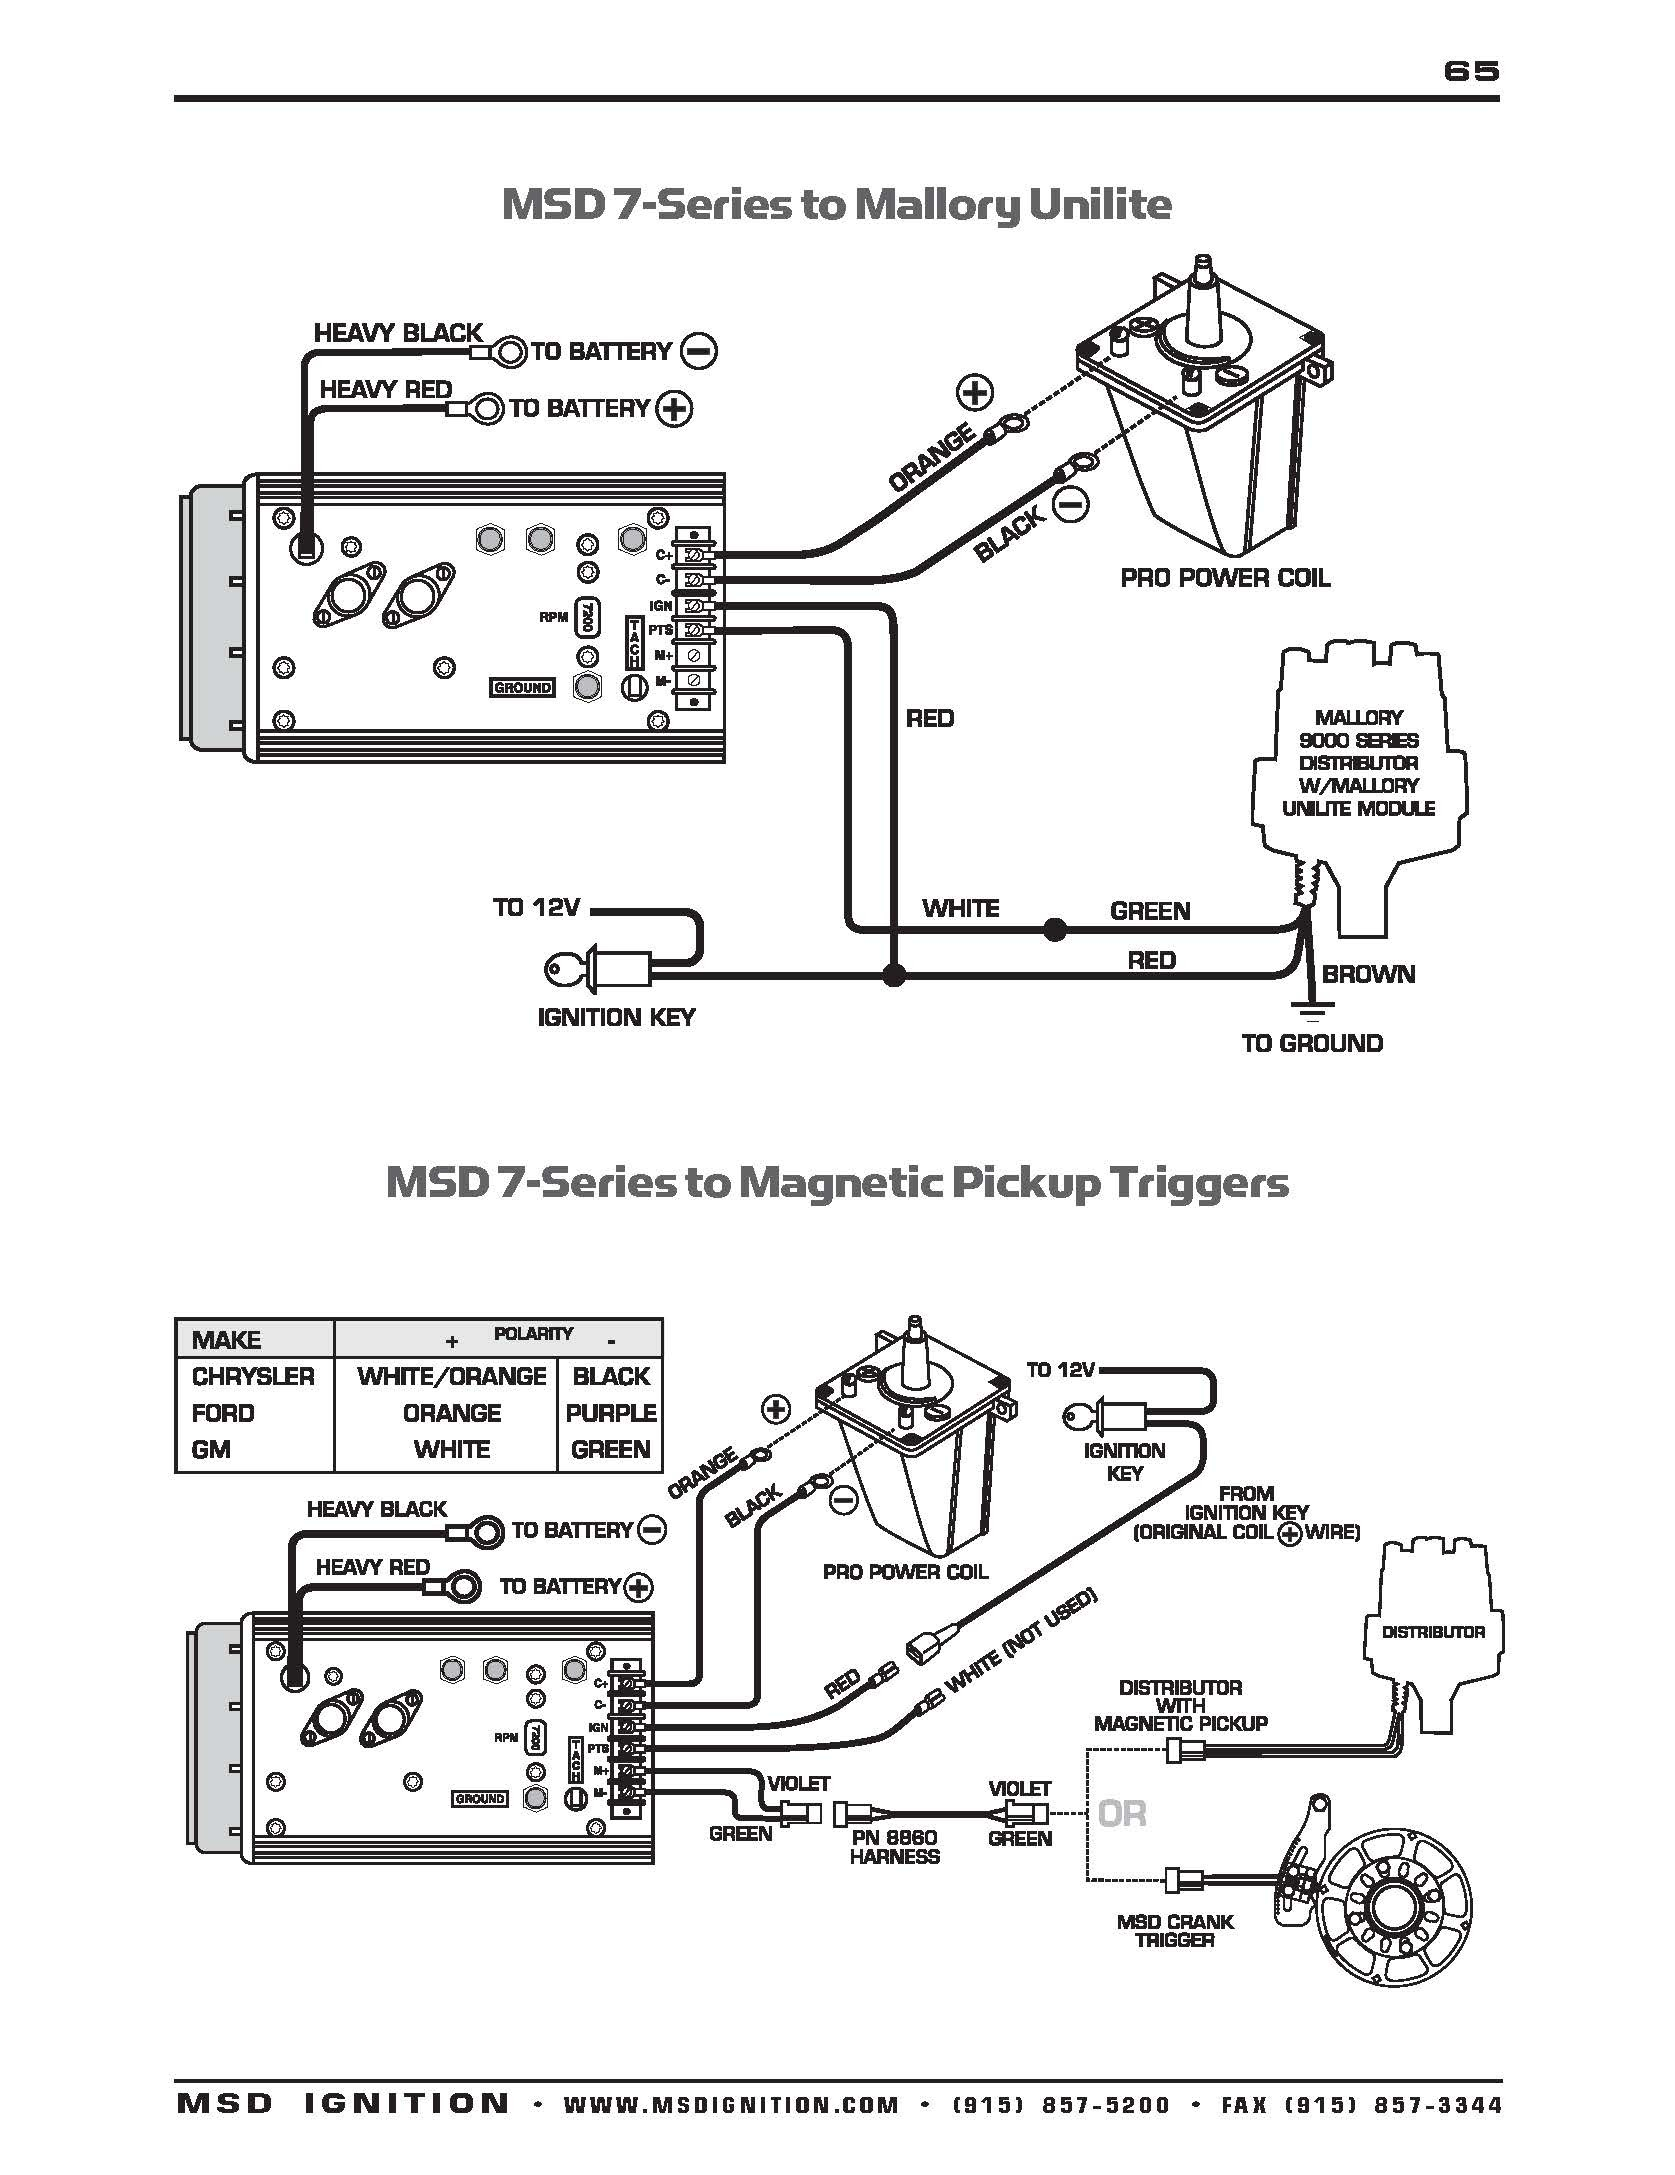 Ignition Coil Distributor Wiring Diagram Wdtn Pn9615 Page 064 In Msd Distributor Wiring Diagram Wiring Diagram Of Ignition Coil Distributor Wiring Diagram